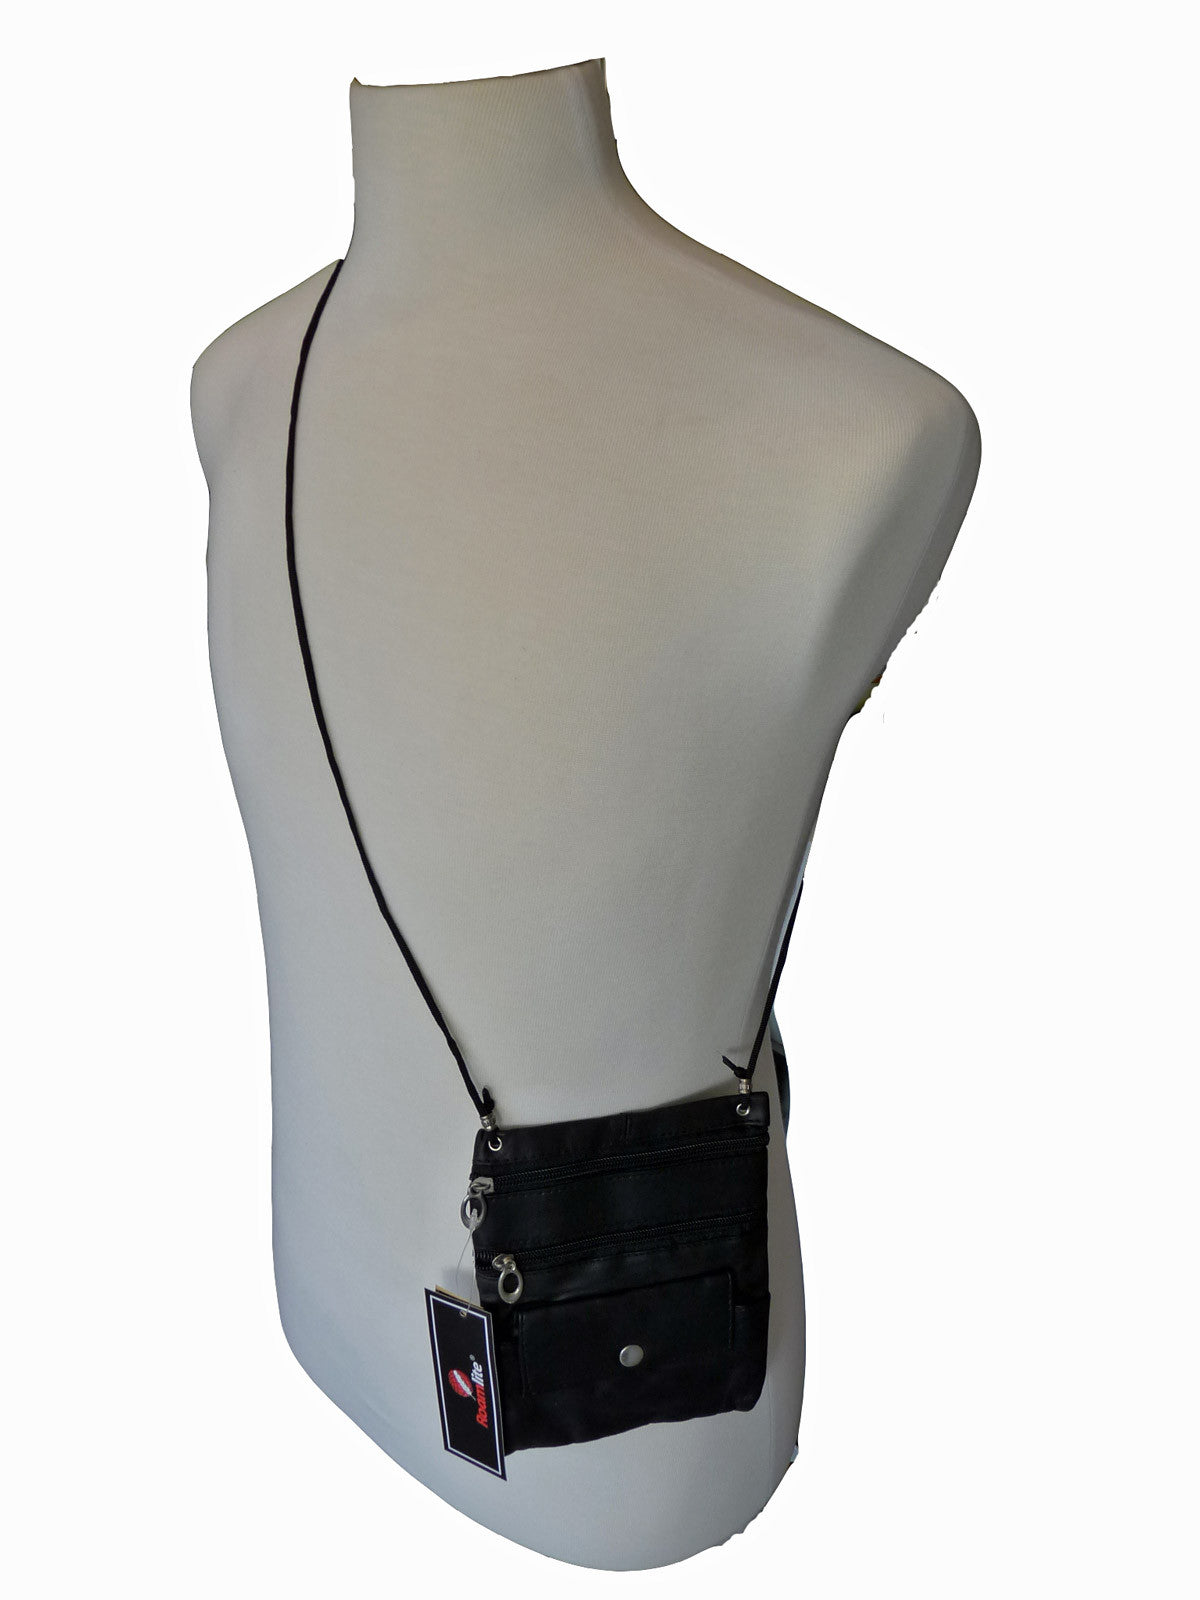 Leather Neck Pouch RL130 Black Shoulder View